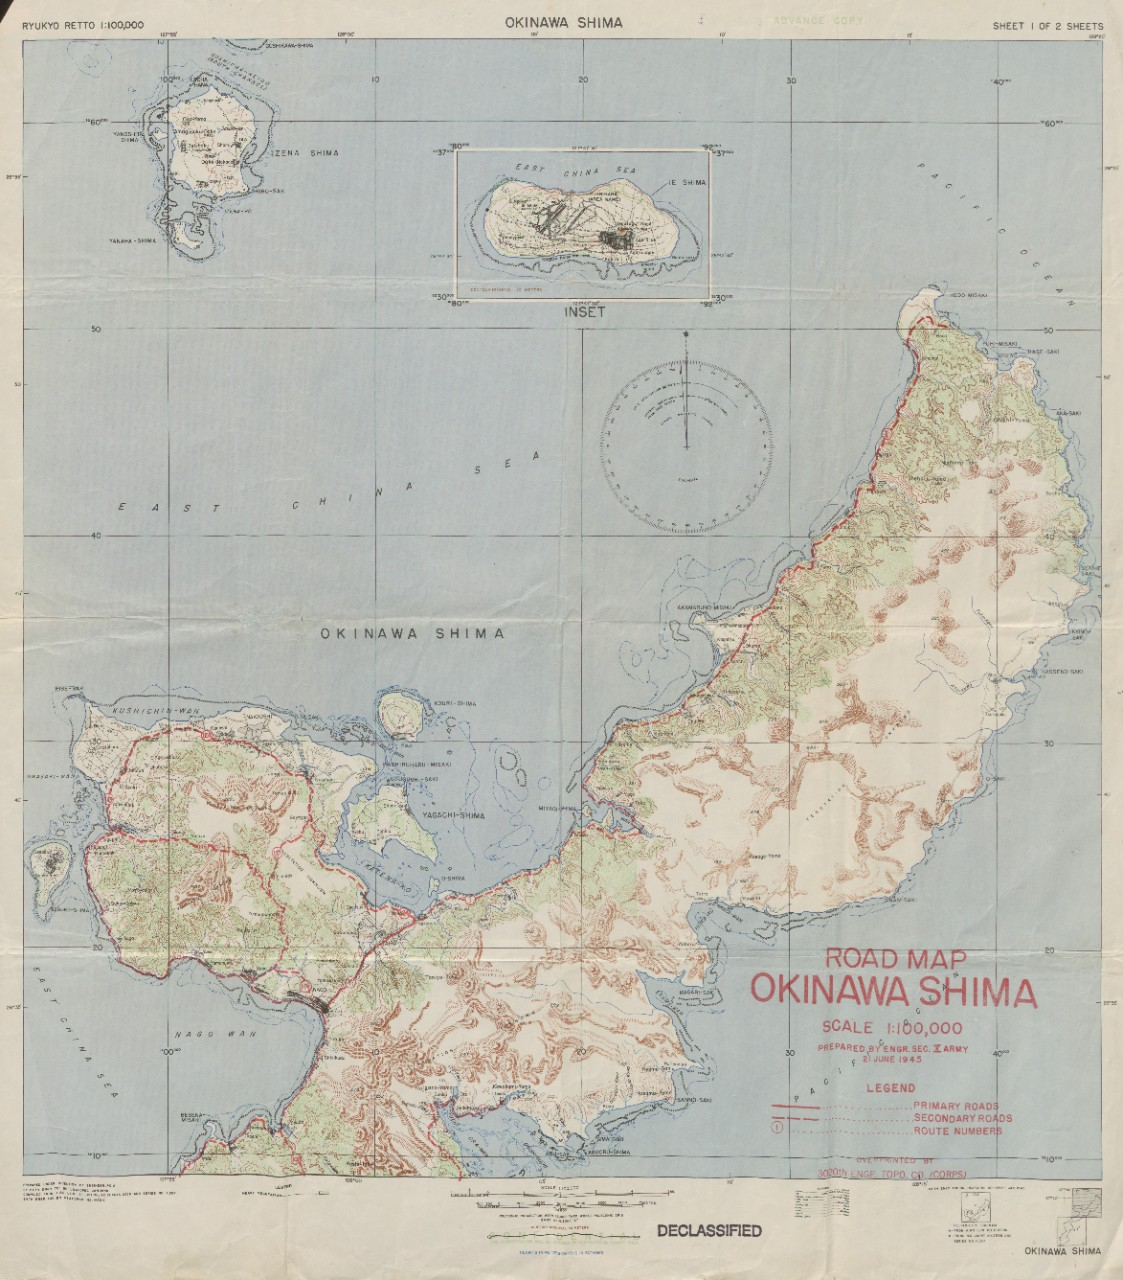 Okinawa Shima Road Map (1 of 2)